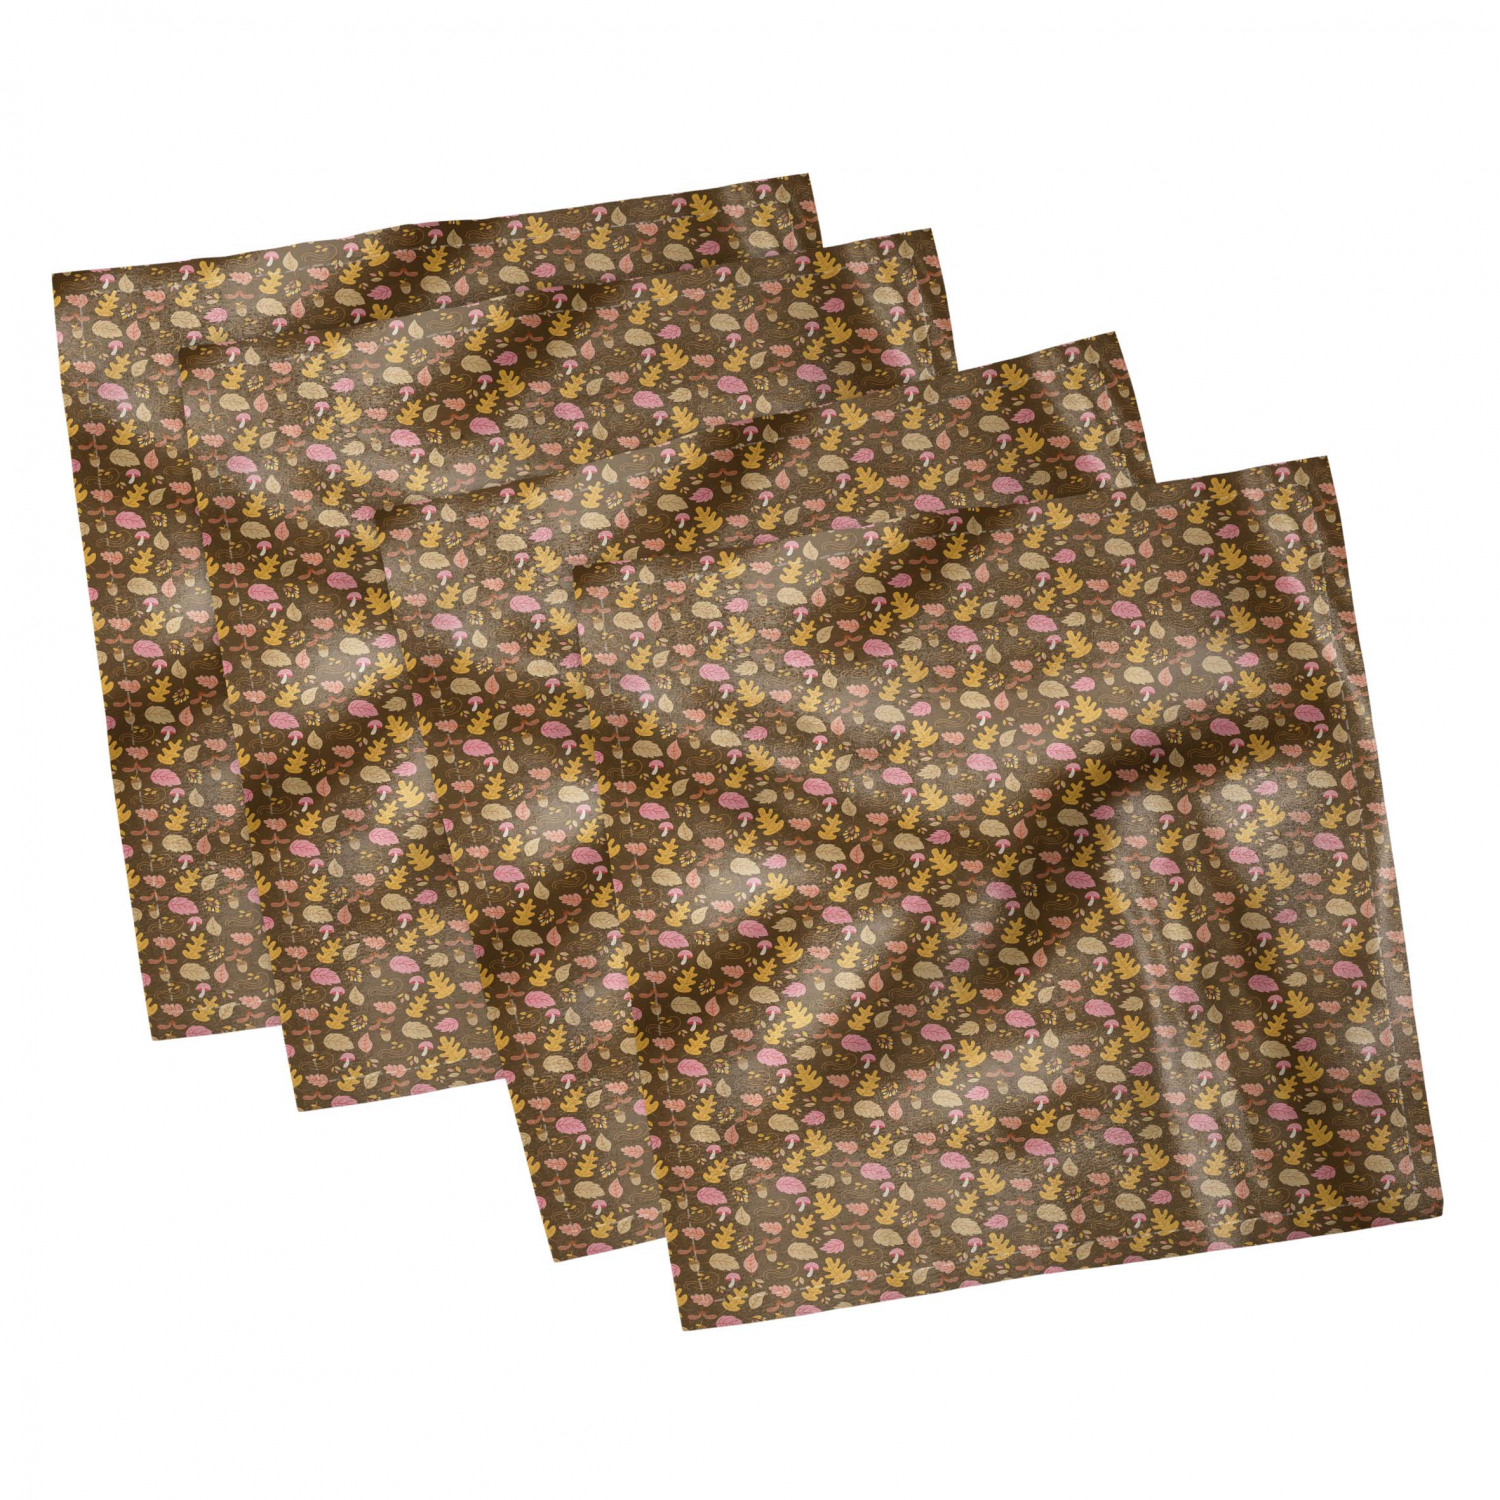 thumbnail 93 - Ambesonne Autumn Fall Decorative Satin Napkins Set of 4 Party Dinner Fabric